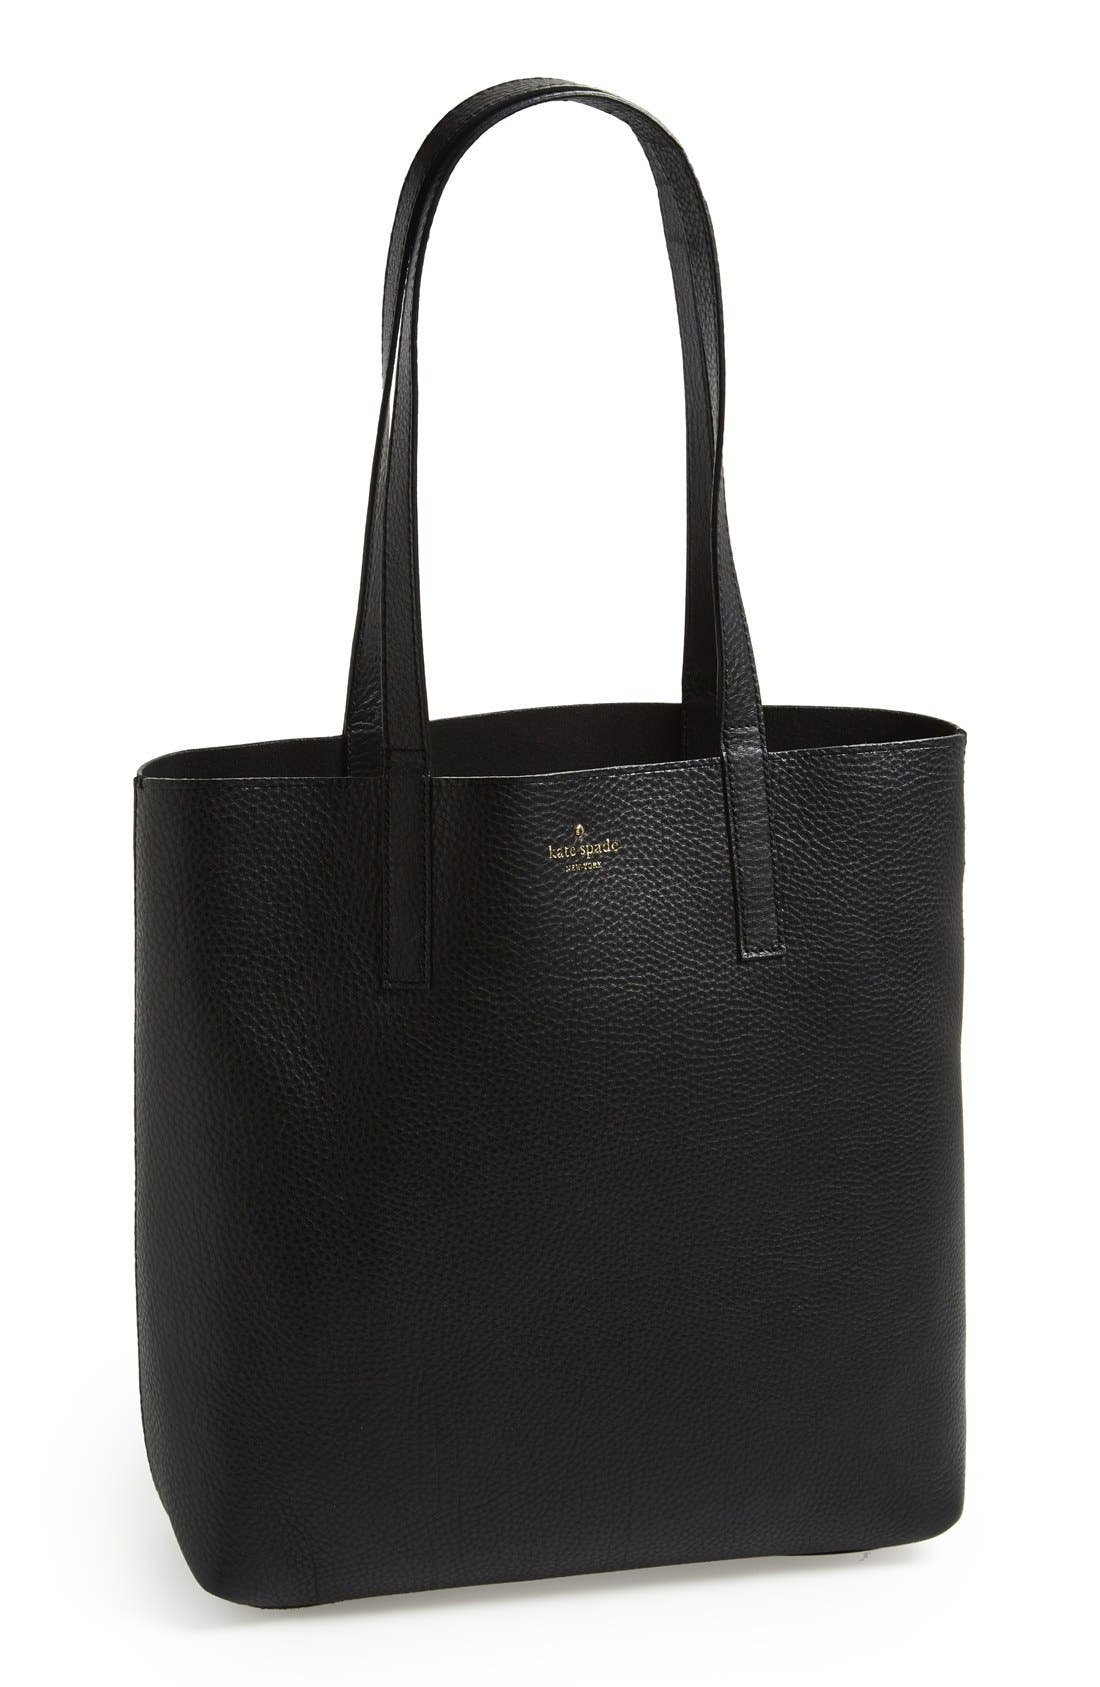 Main Image - kate spade new york 'henry lane - lulu' tote